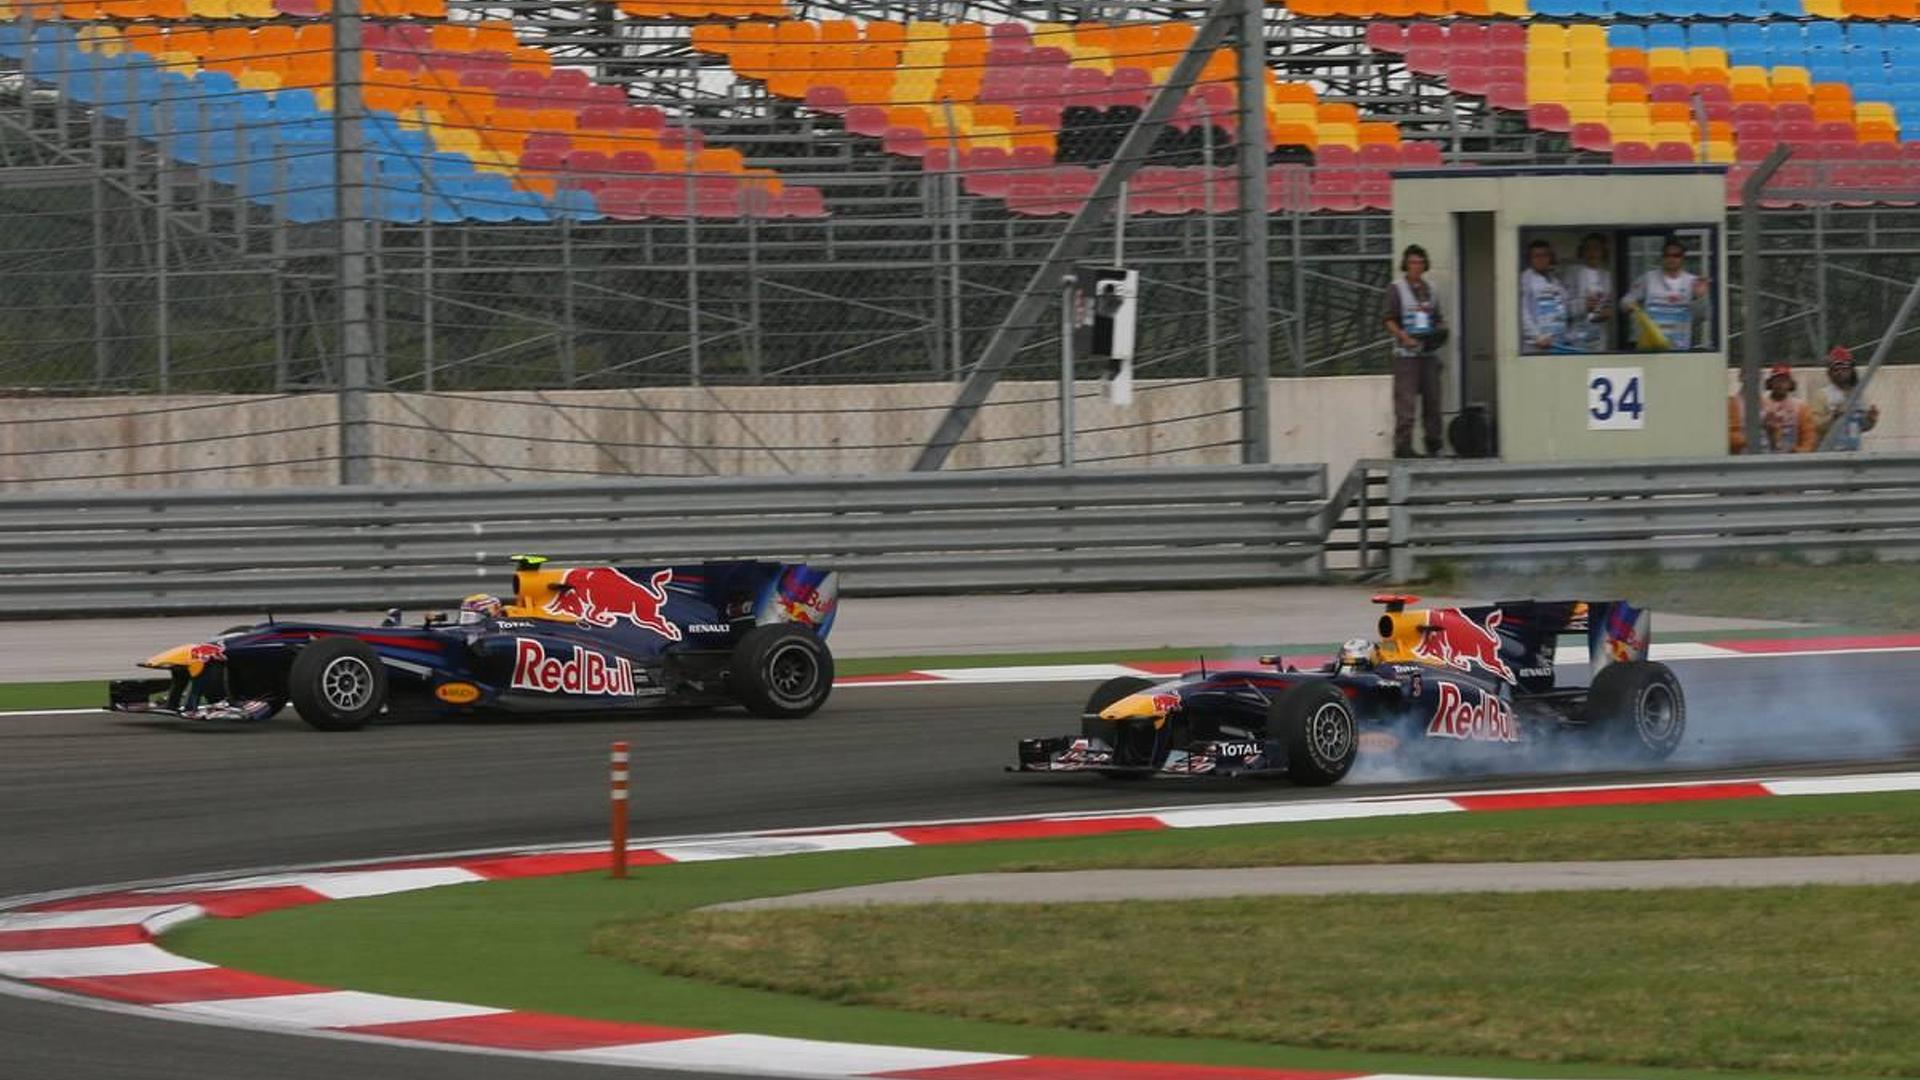 Crash 'excellent marketing' for Red Bull - Coulthard